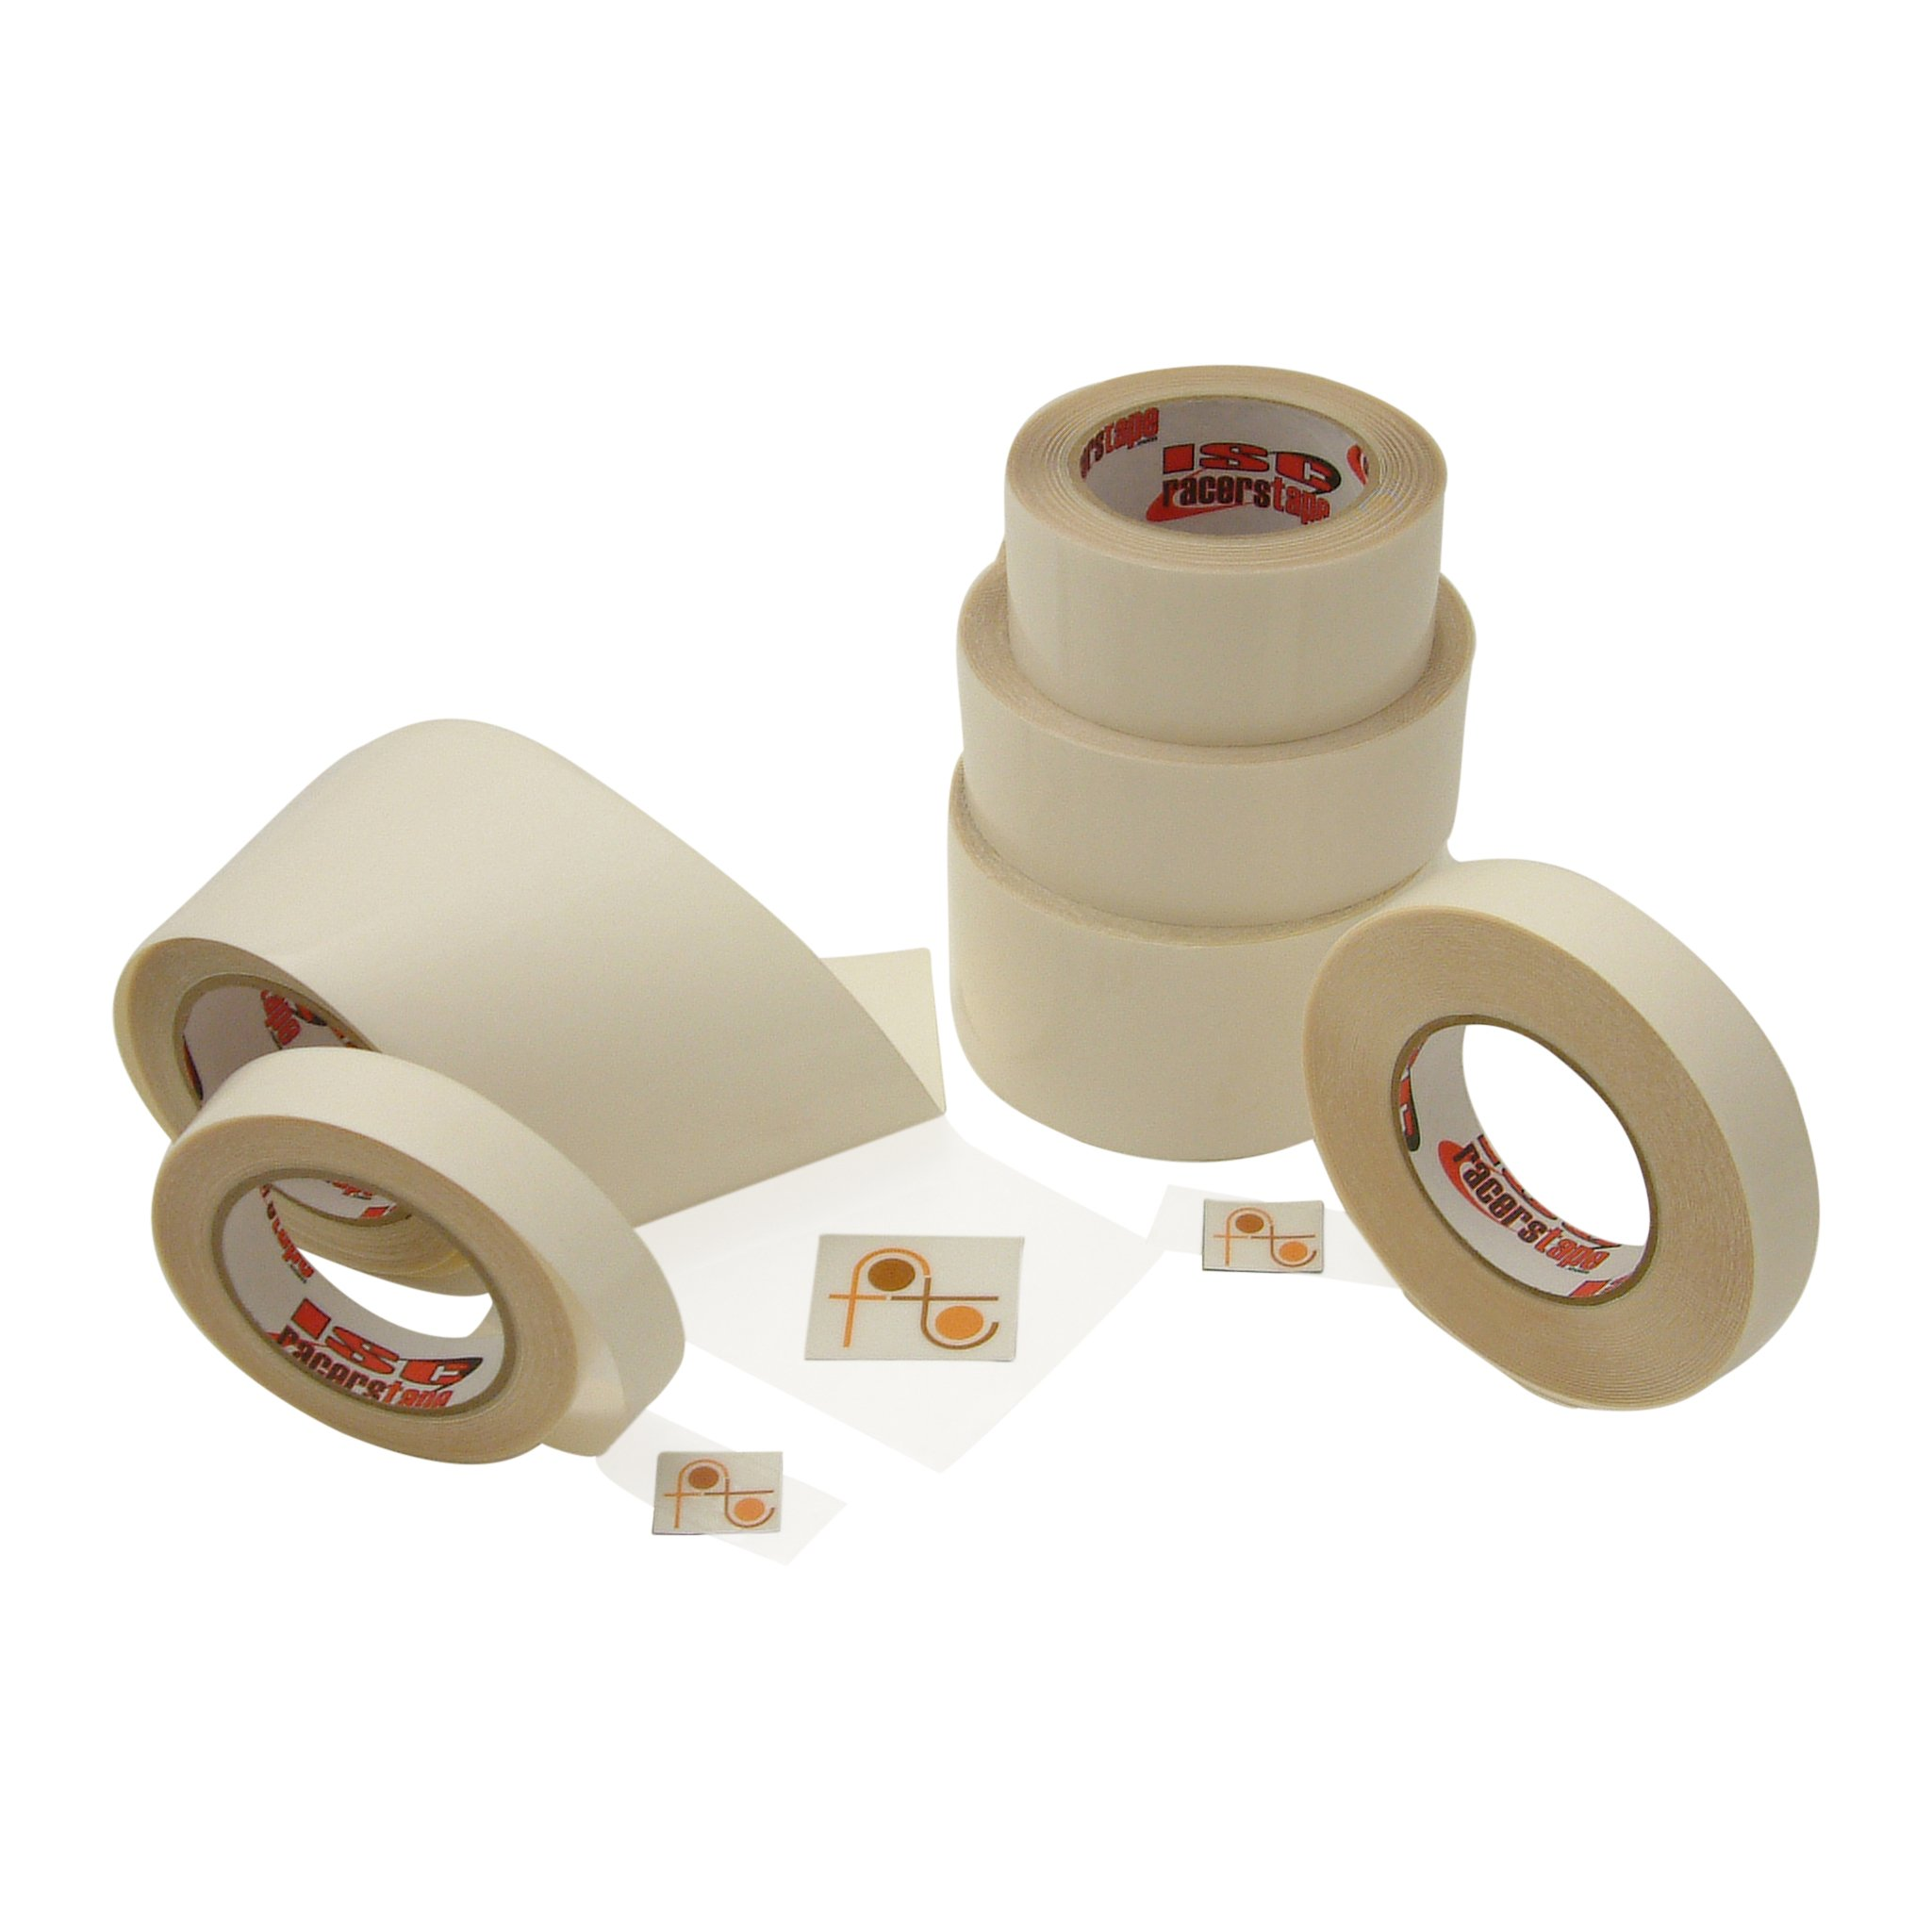 ISC Racers Tape HT3314 ISC Helicopter-OG-HD Surface Guard Tape: 3'' x 30 ft, Transparent by ISC Racers Tape